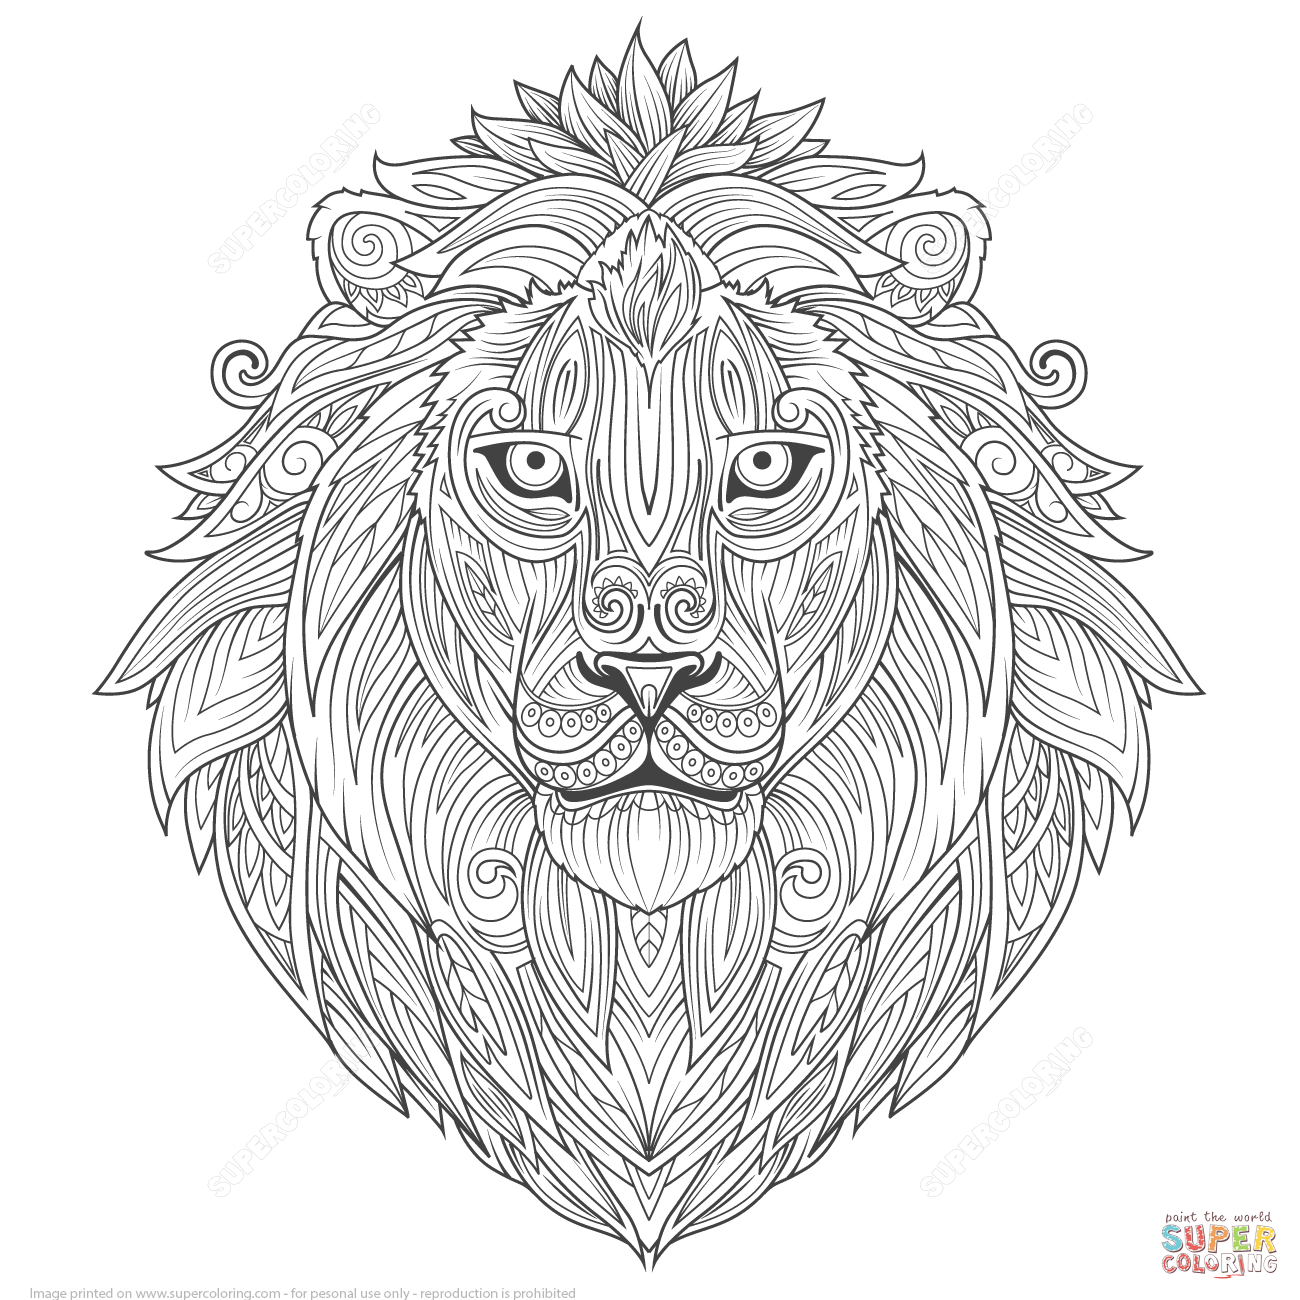 Zentangle Coloring Pages Select From 27237 Printable Of Cartoons Animals Nature Bible And Many More